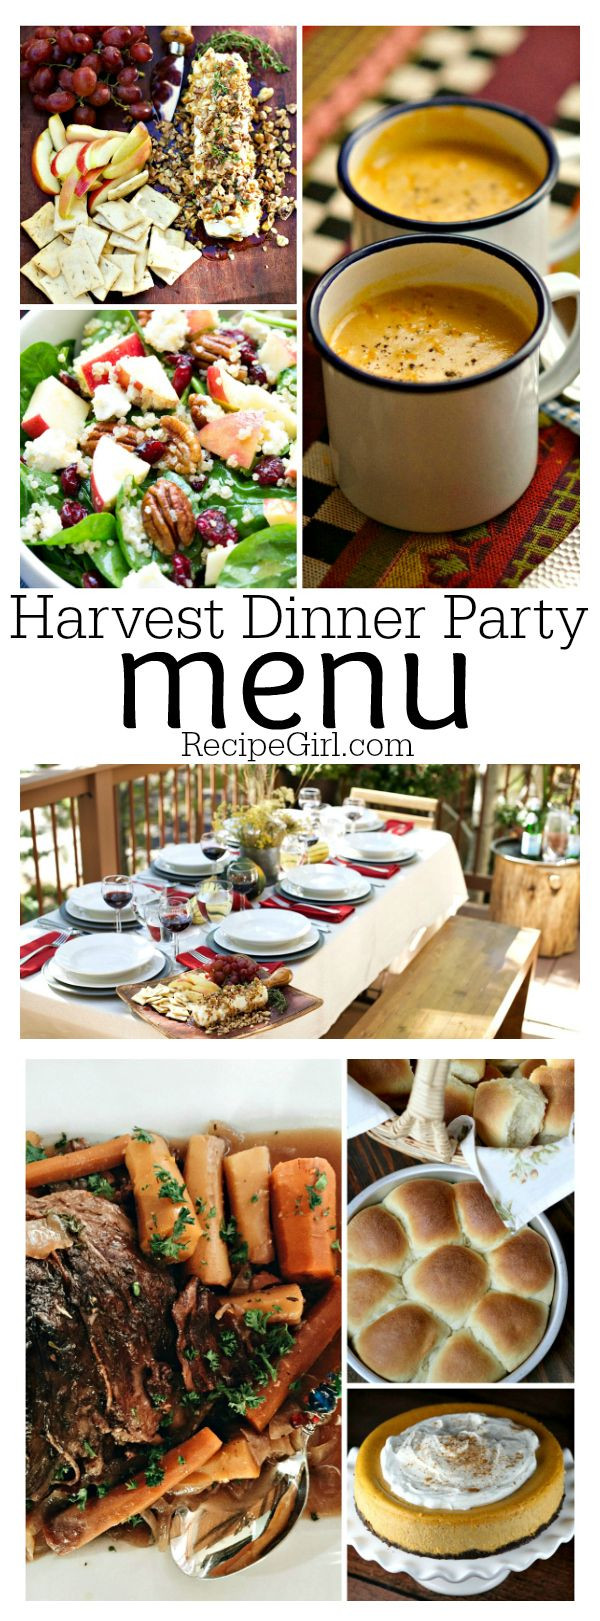 Fall Dinner Party Menu  Harvest Dinner Party Menu plete menu with recipes and